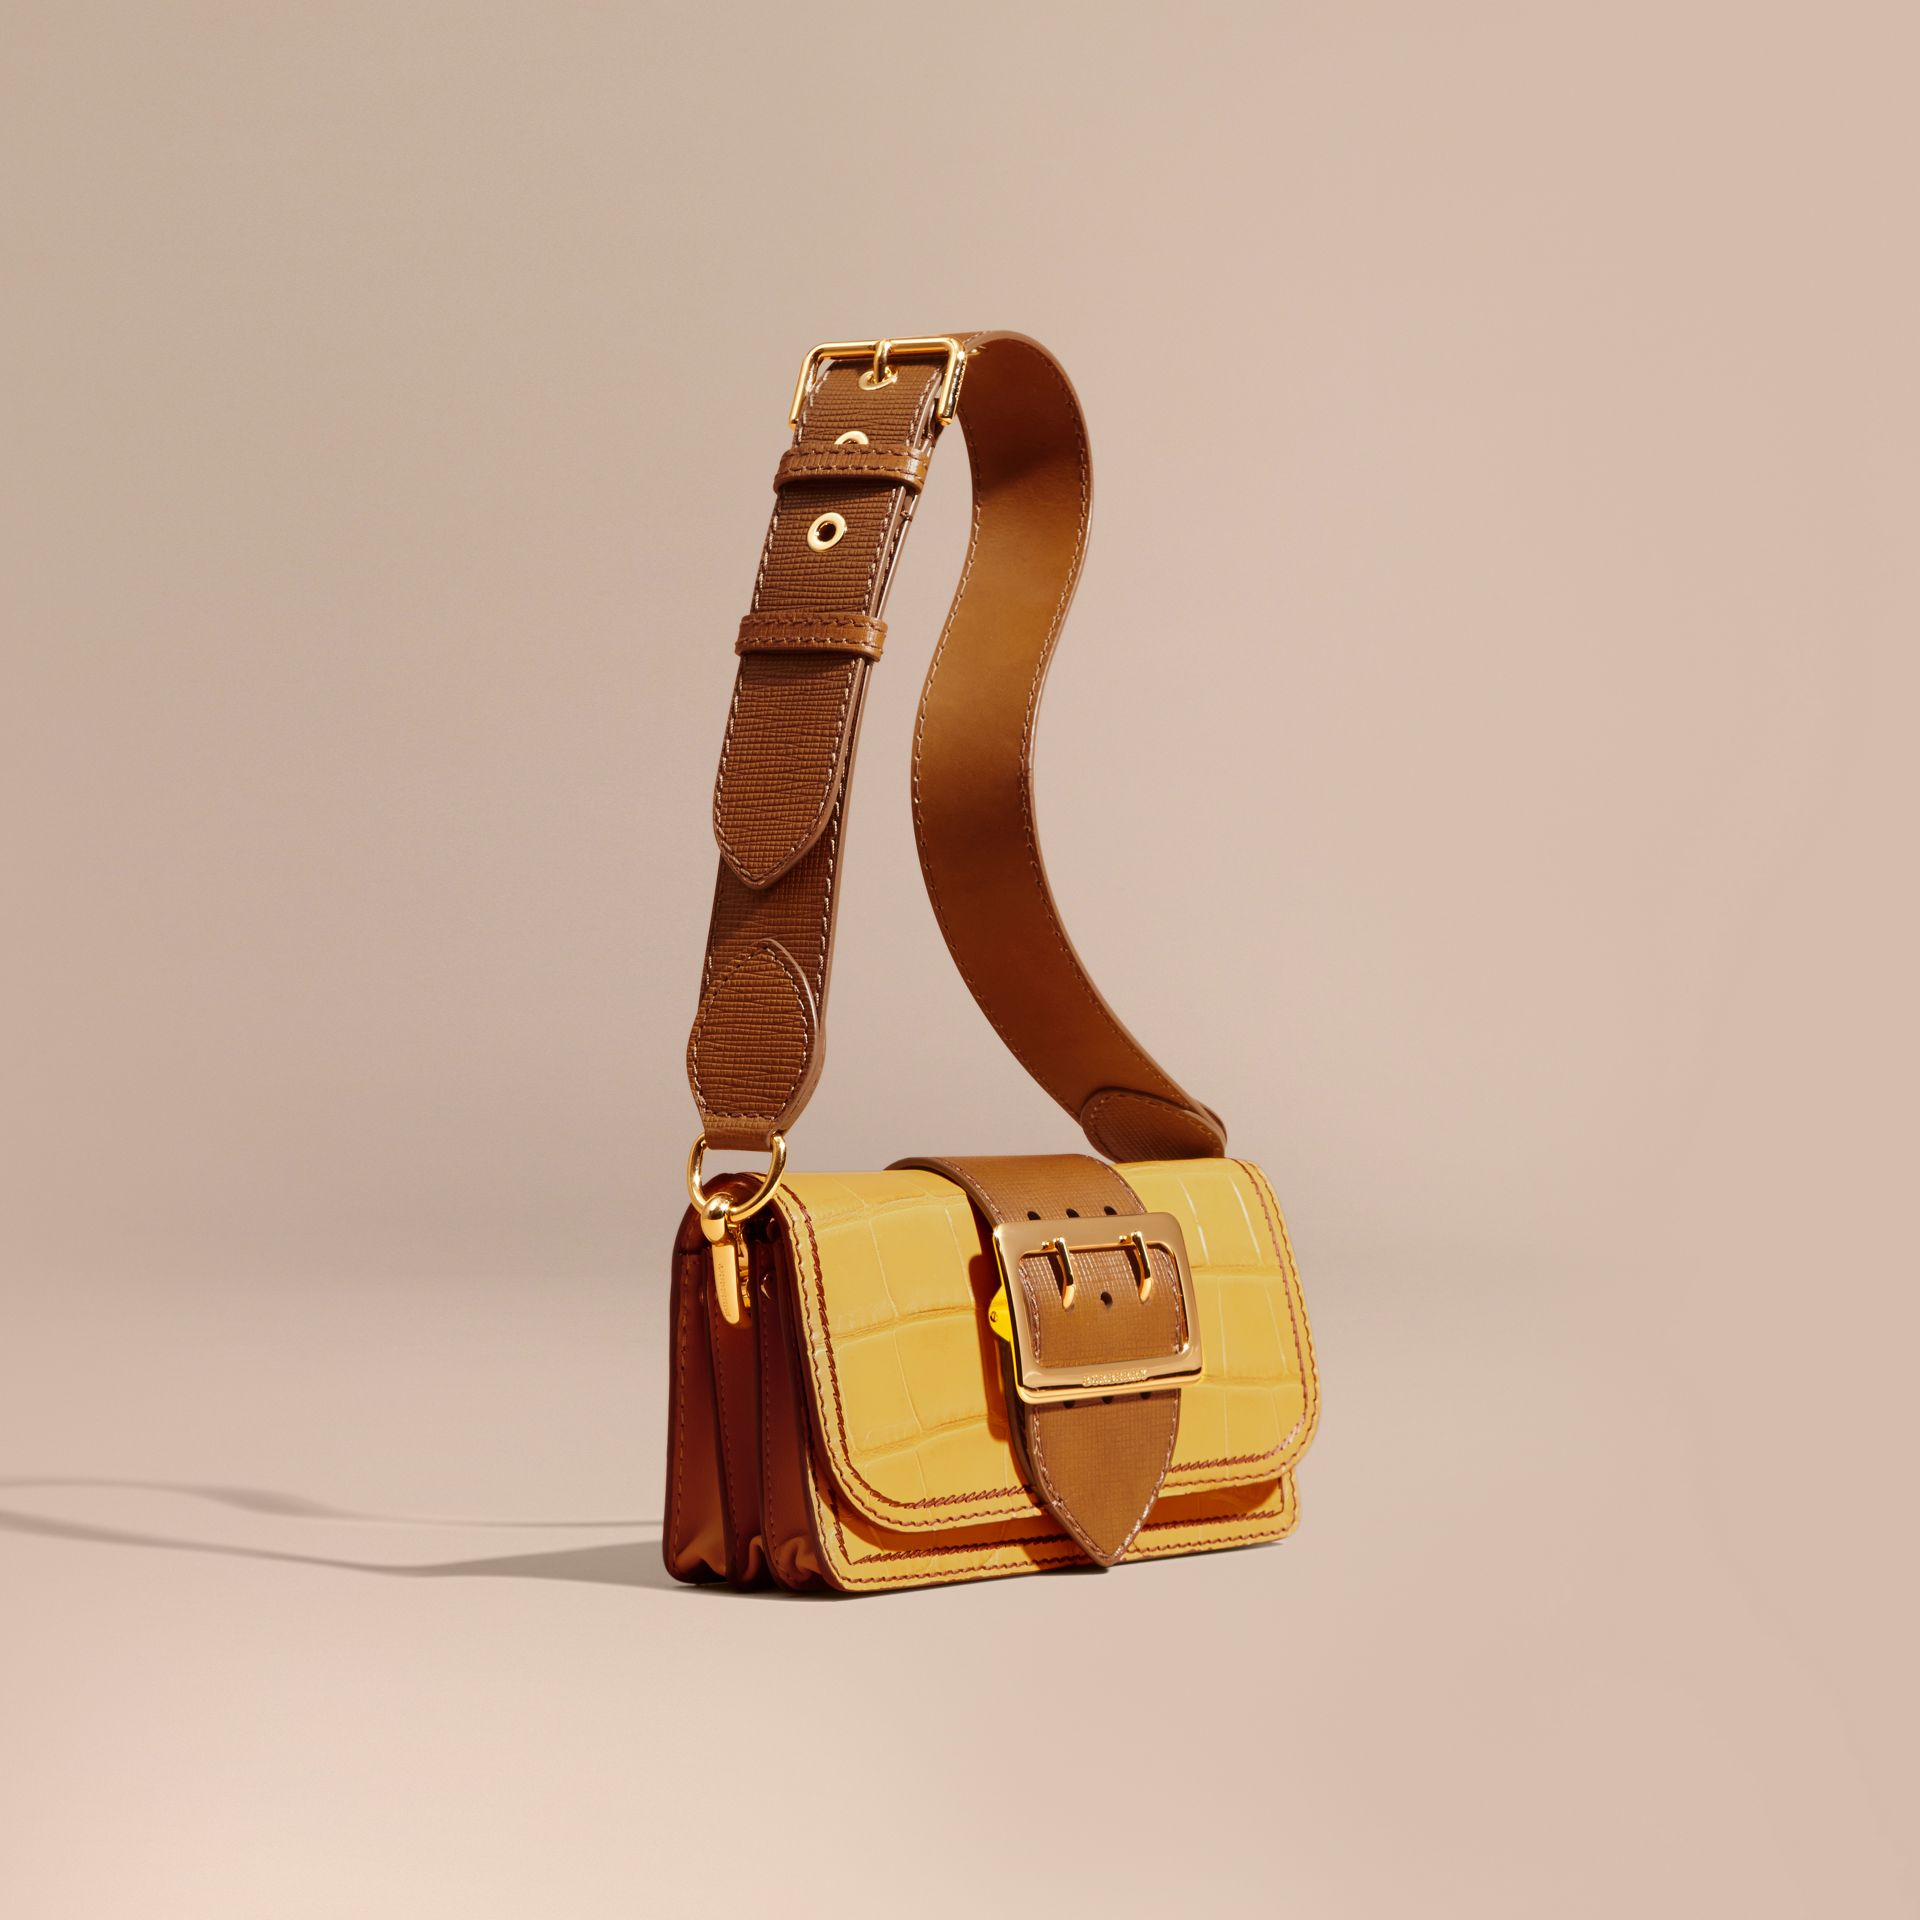 The Small Buckle Bag in Alligator and Leather in Citrus Yellow / Tan - Women | Burberry Canada - gallery image 1